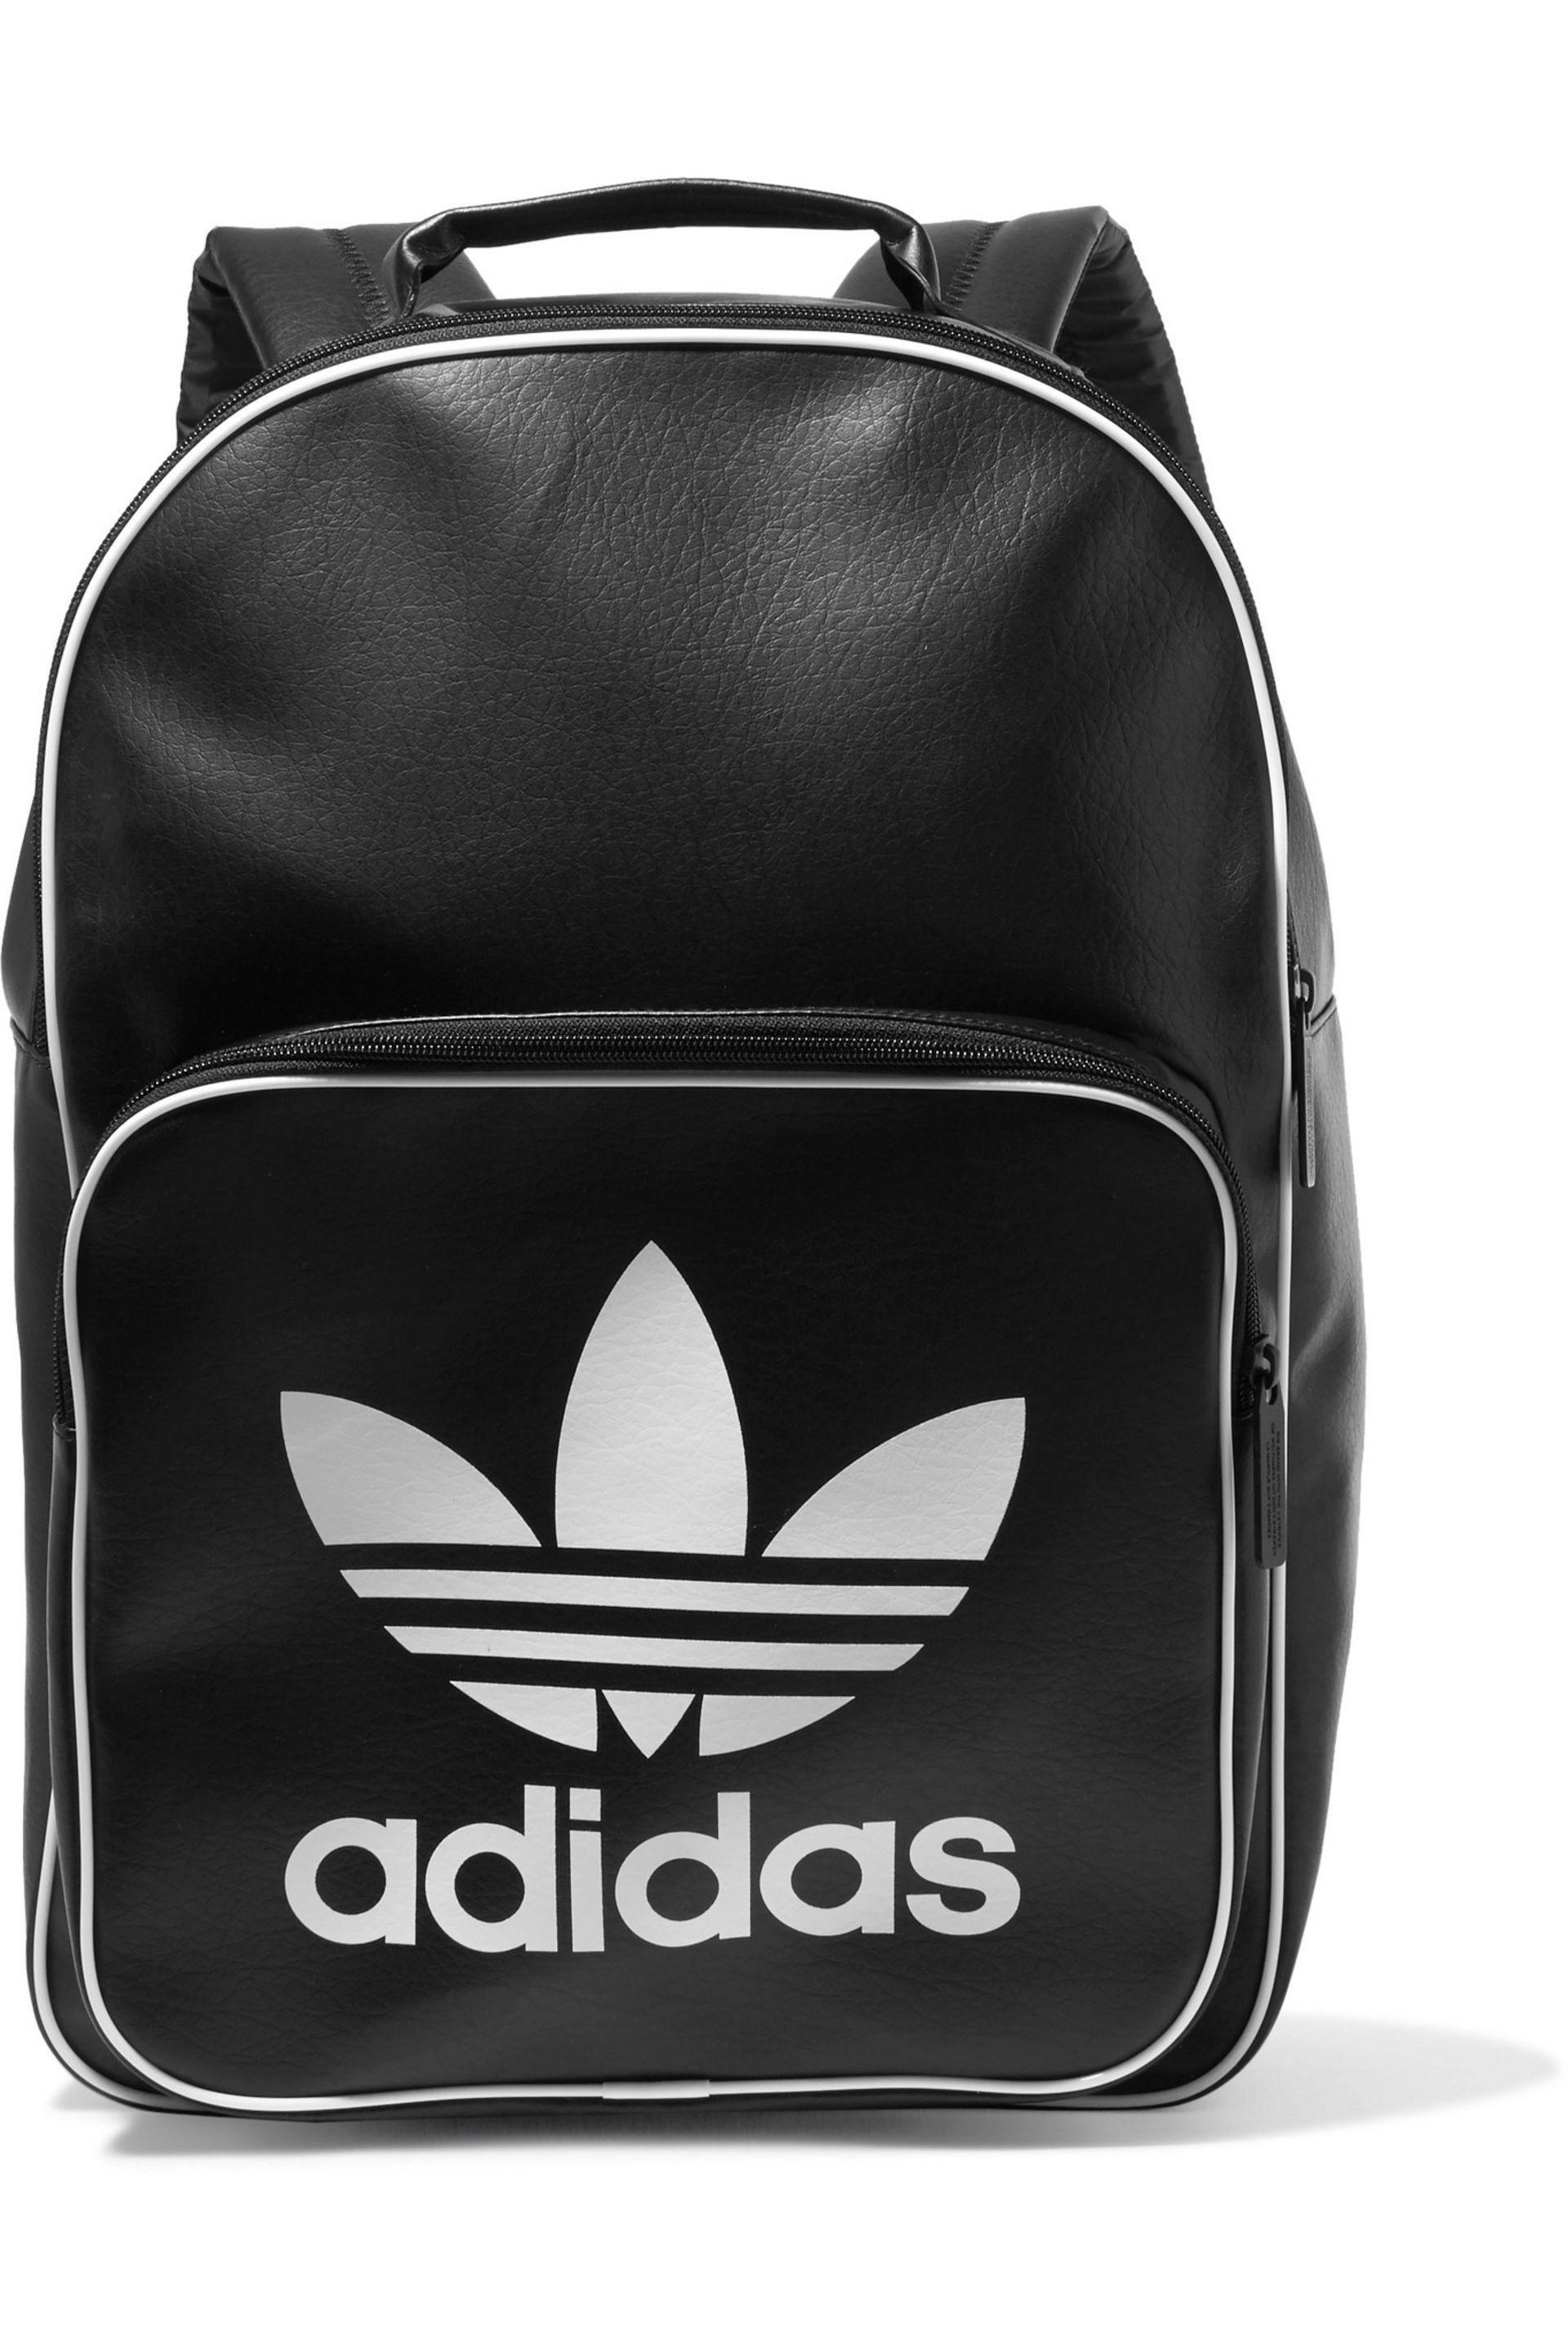 214ea9995d6c adidas Originals Faux Leather Backpack in Black - Lyst